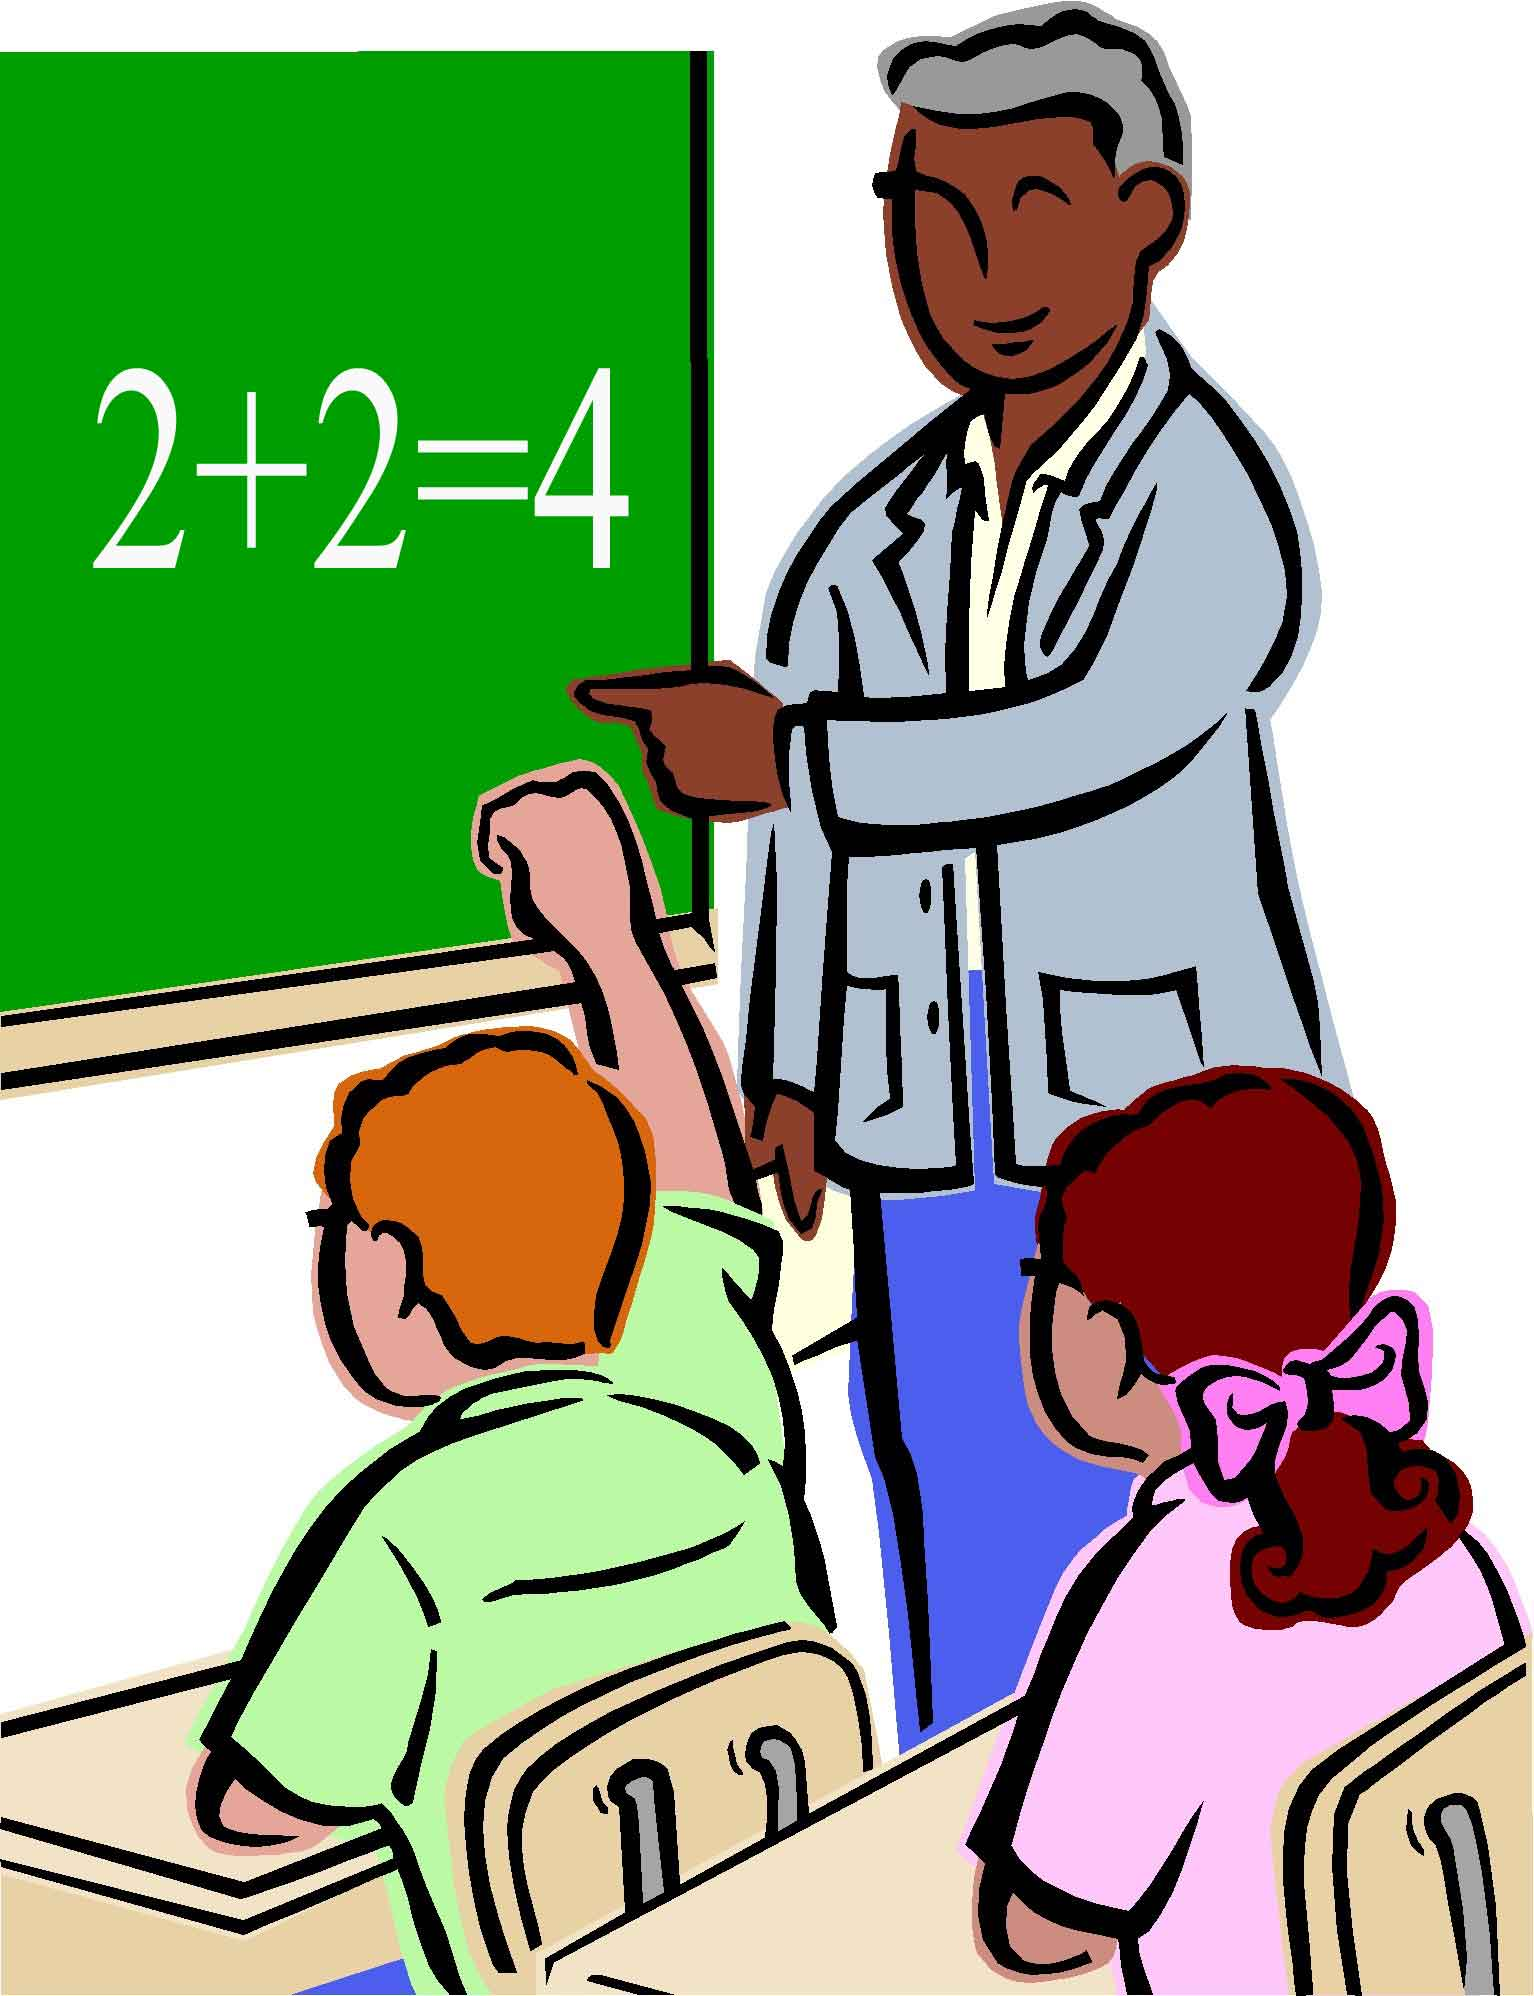 math clipart at getdrawings com free for personal use math clipart rh getdrawings com Bus Clip Art for Teachers free math clip art for teachers dot cards